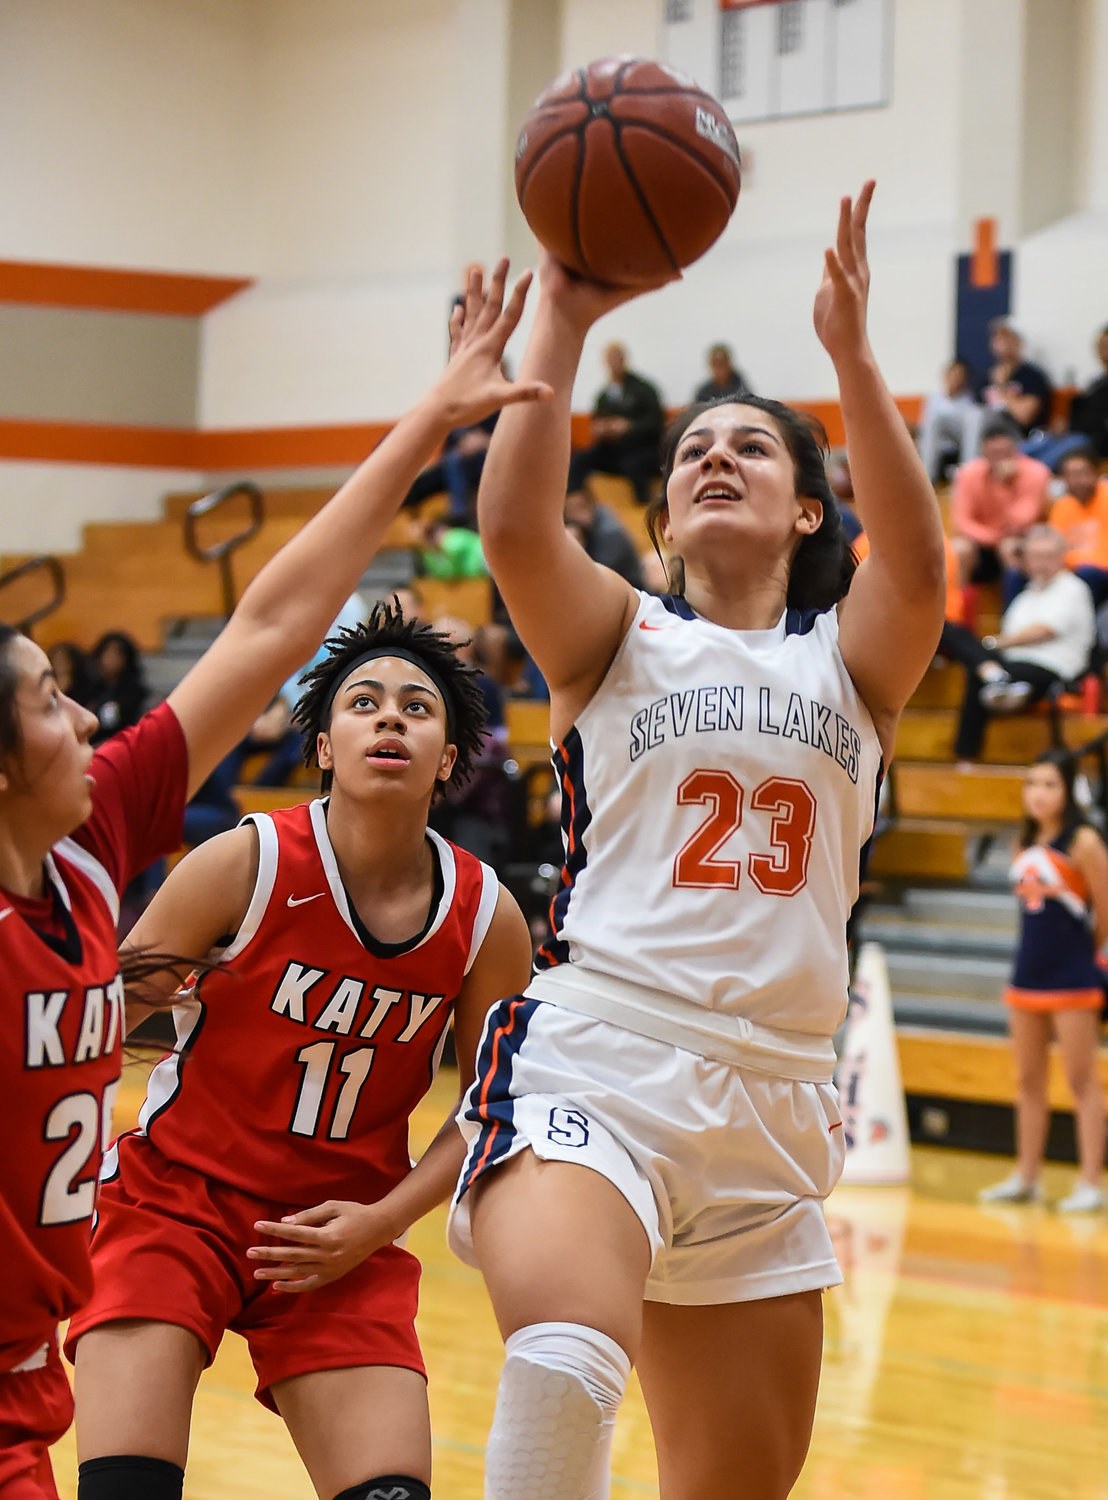 Katy Tx. Jan. 7, 2020: Seven Lakes Daniela Alzate (23) drives to the basket during district basketball game between Katy Tigers and Seven Lakes Spartans at Seven Lakes HS.  (Photo by Mark Goodman / Katy Times)